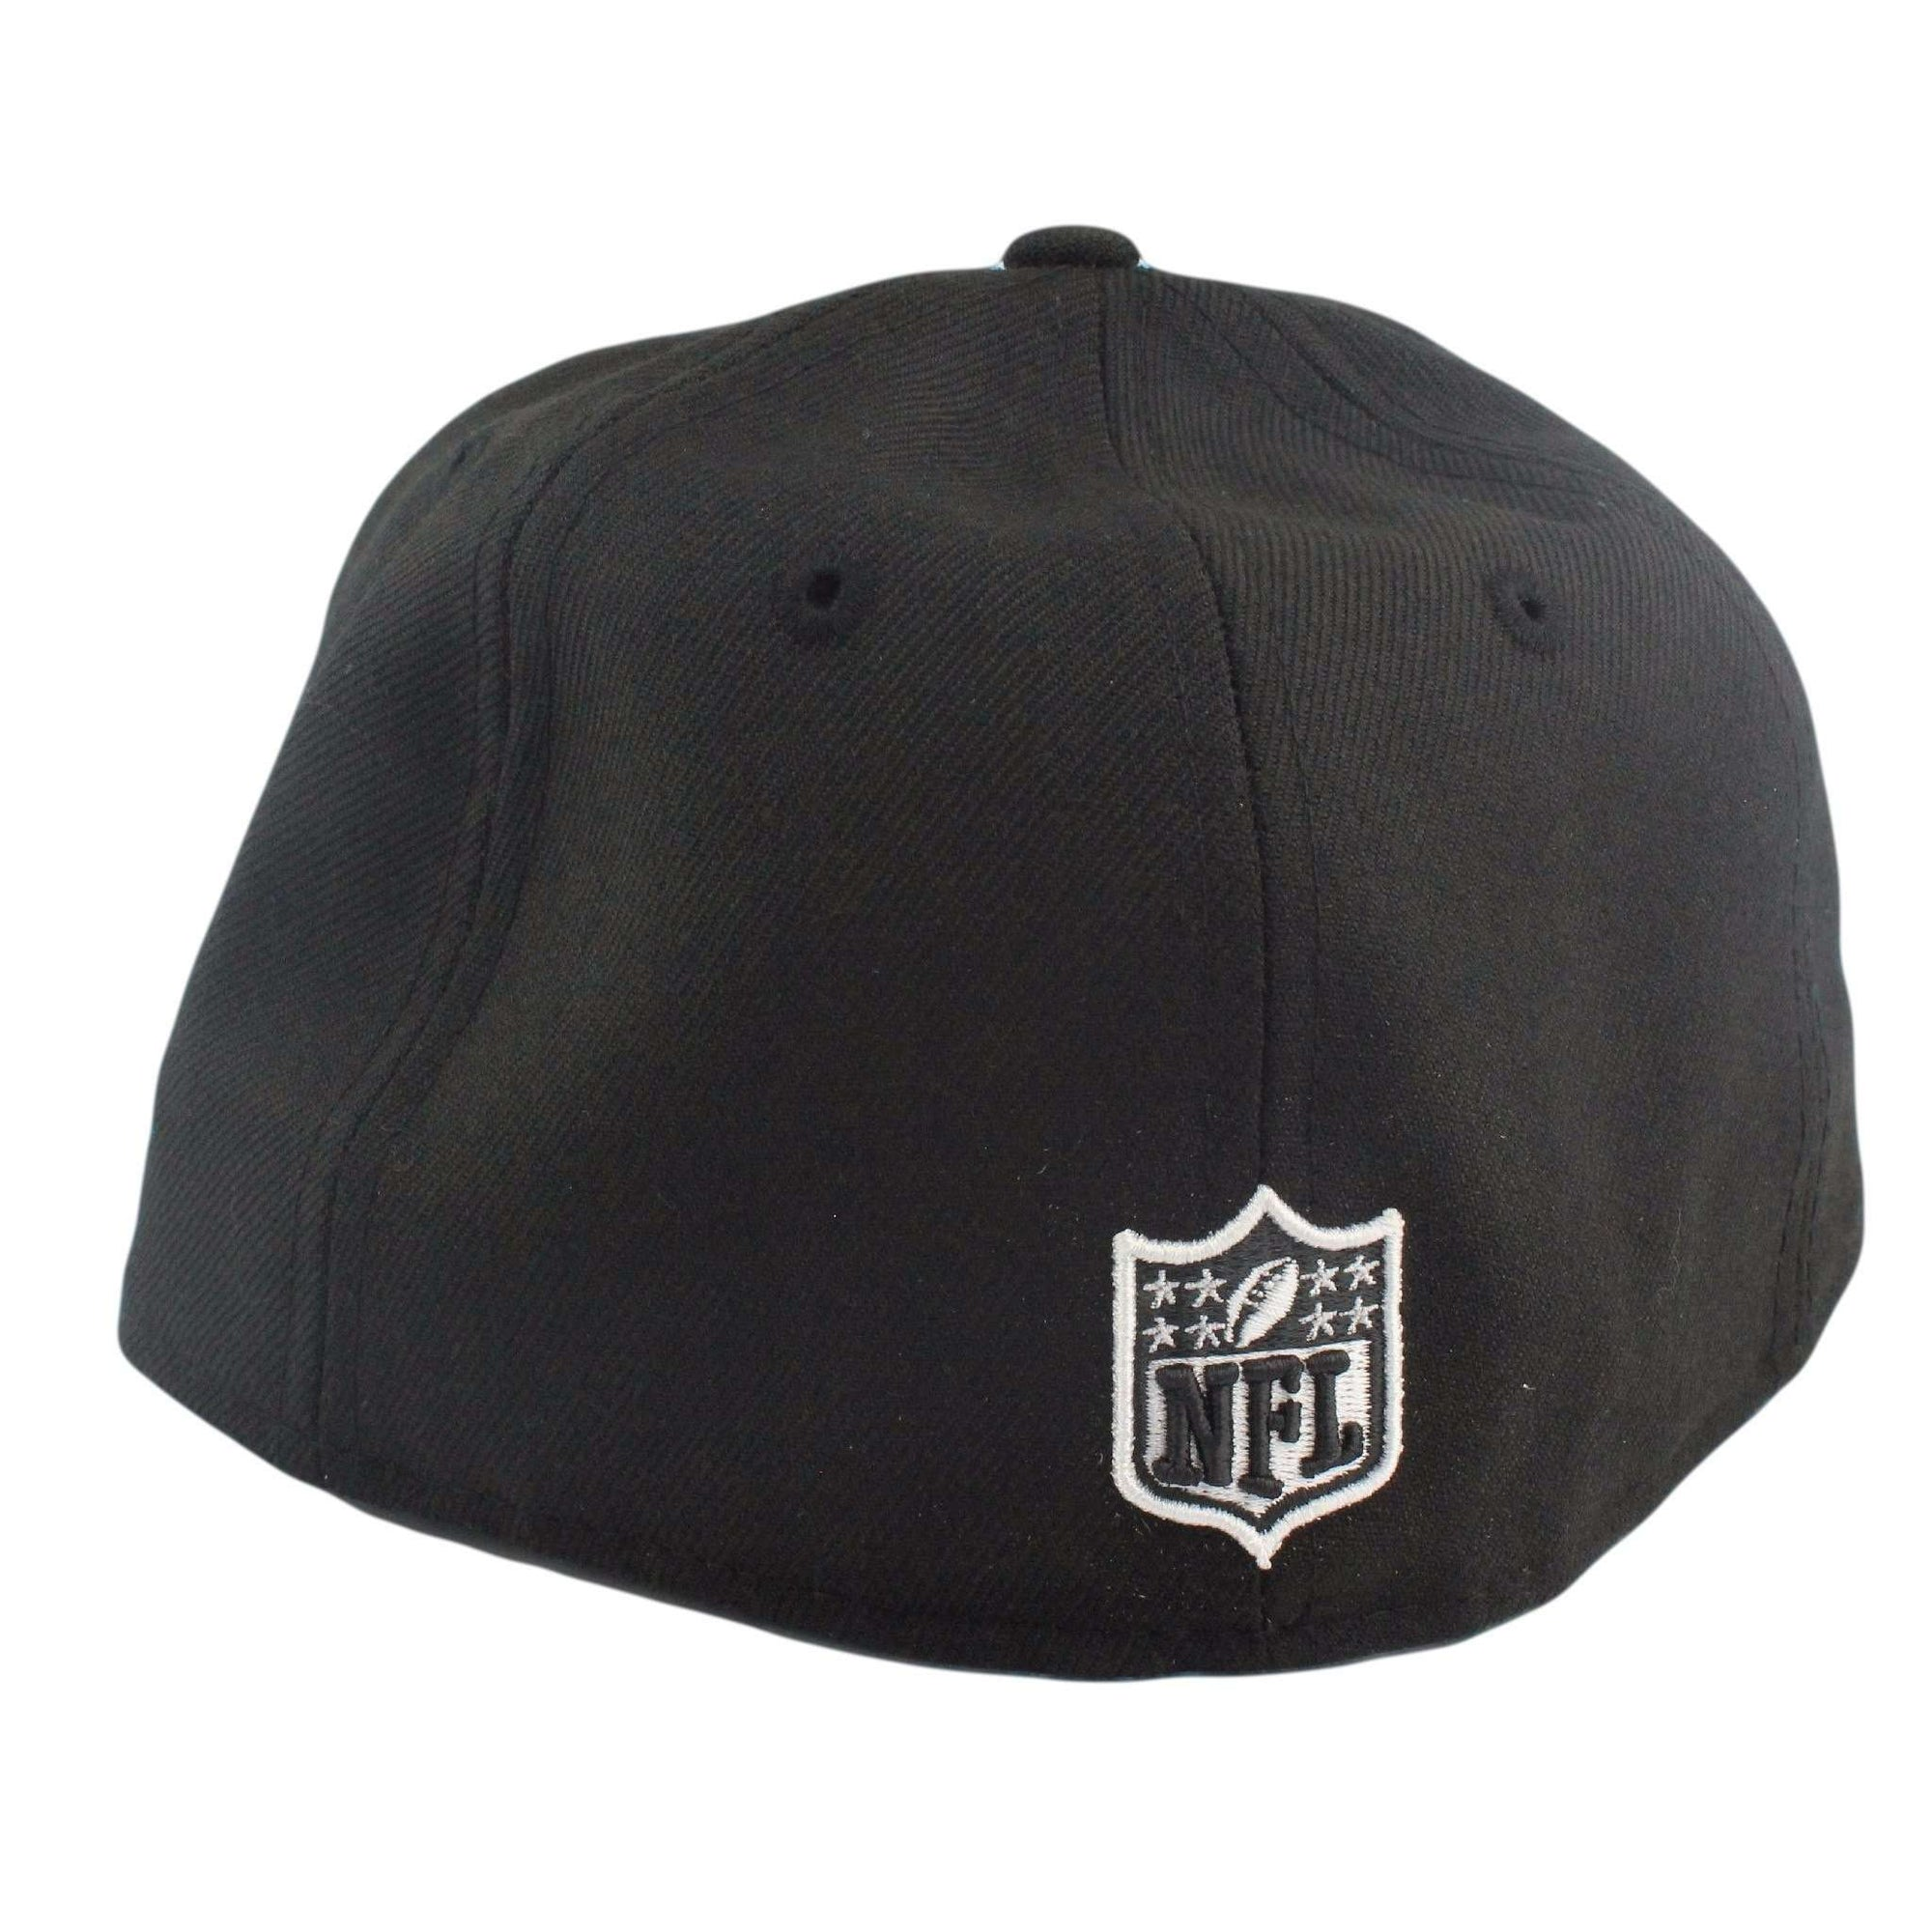 huge selection of 64f96 83a0d New Era Oakland Raiders White Logo Black Black Fitted